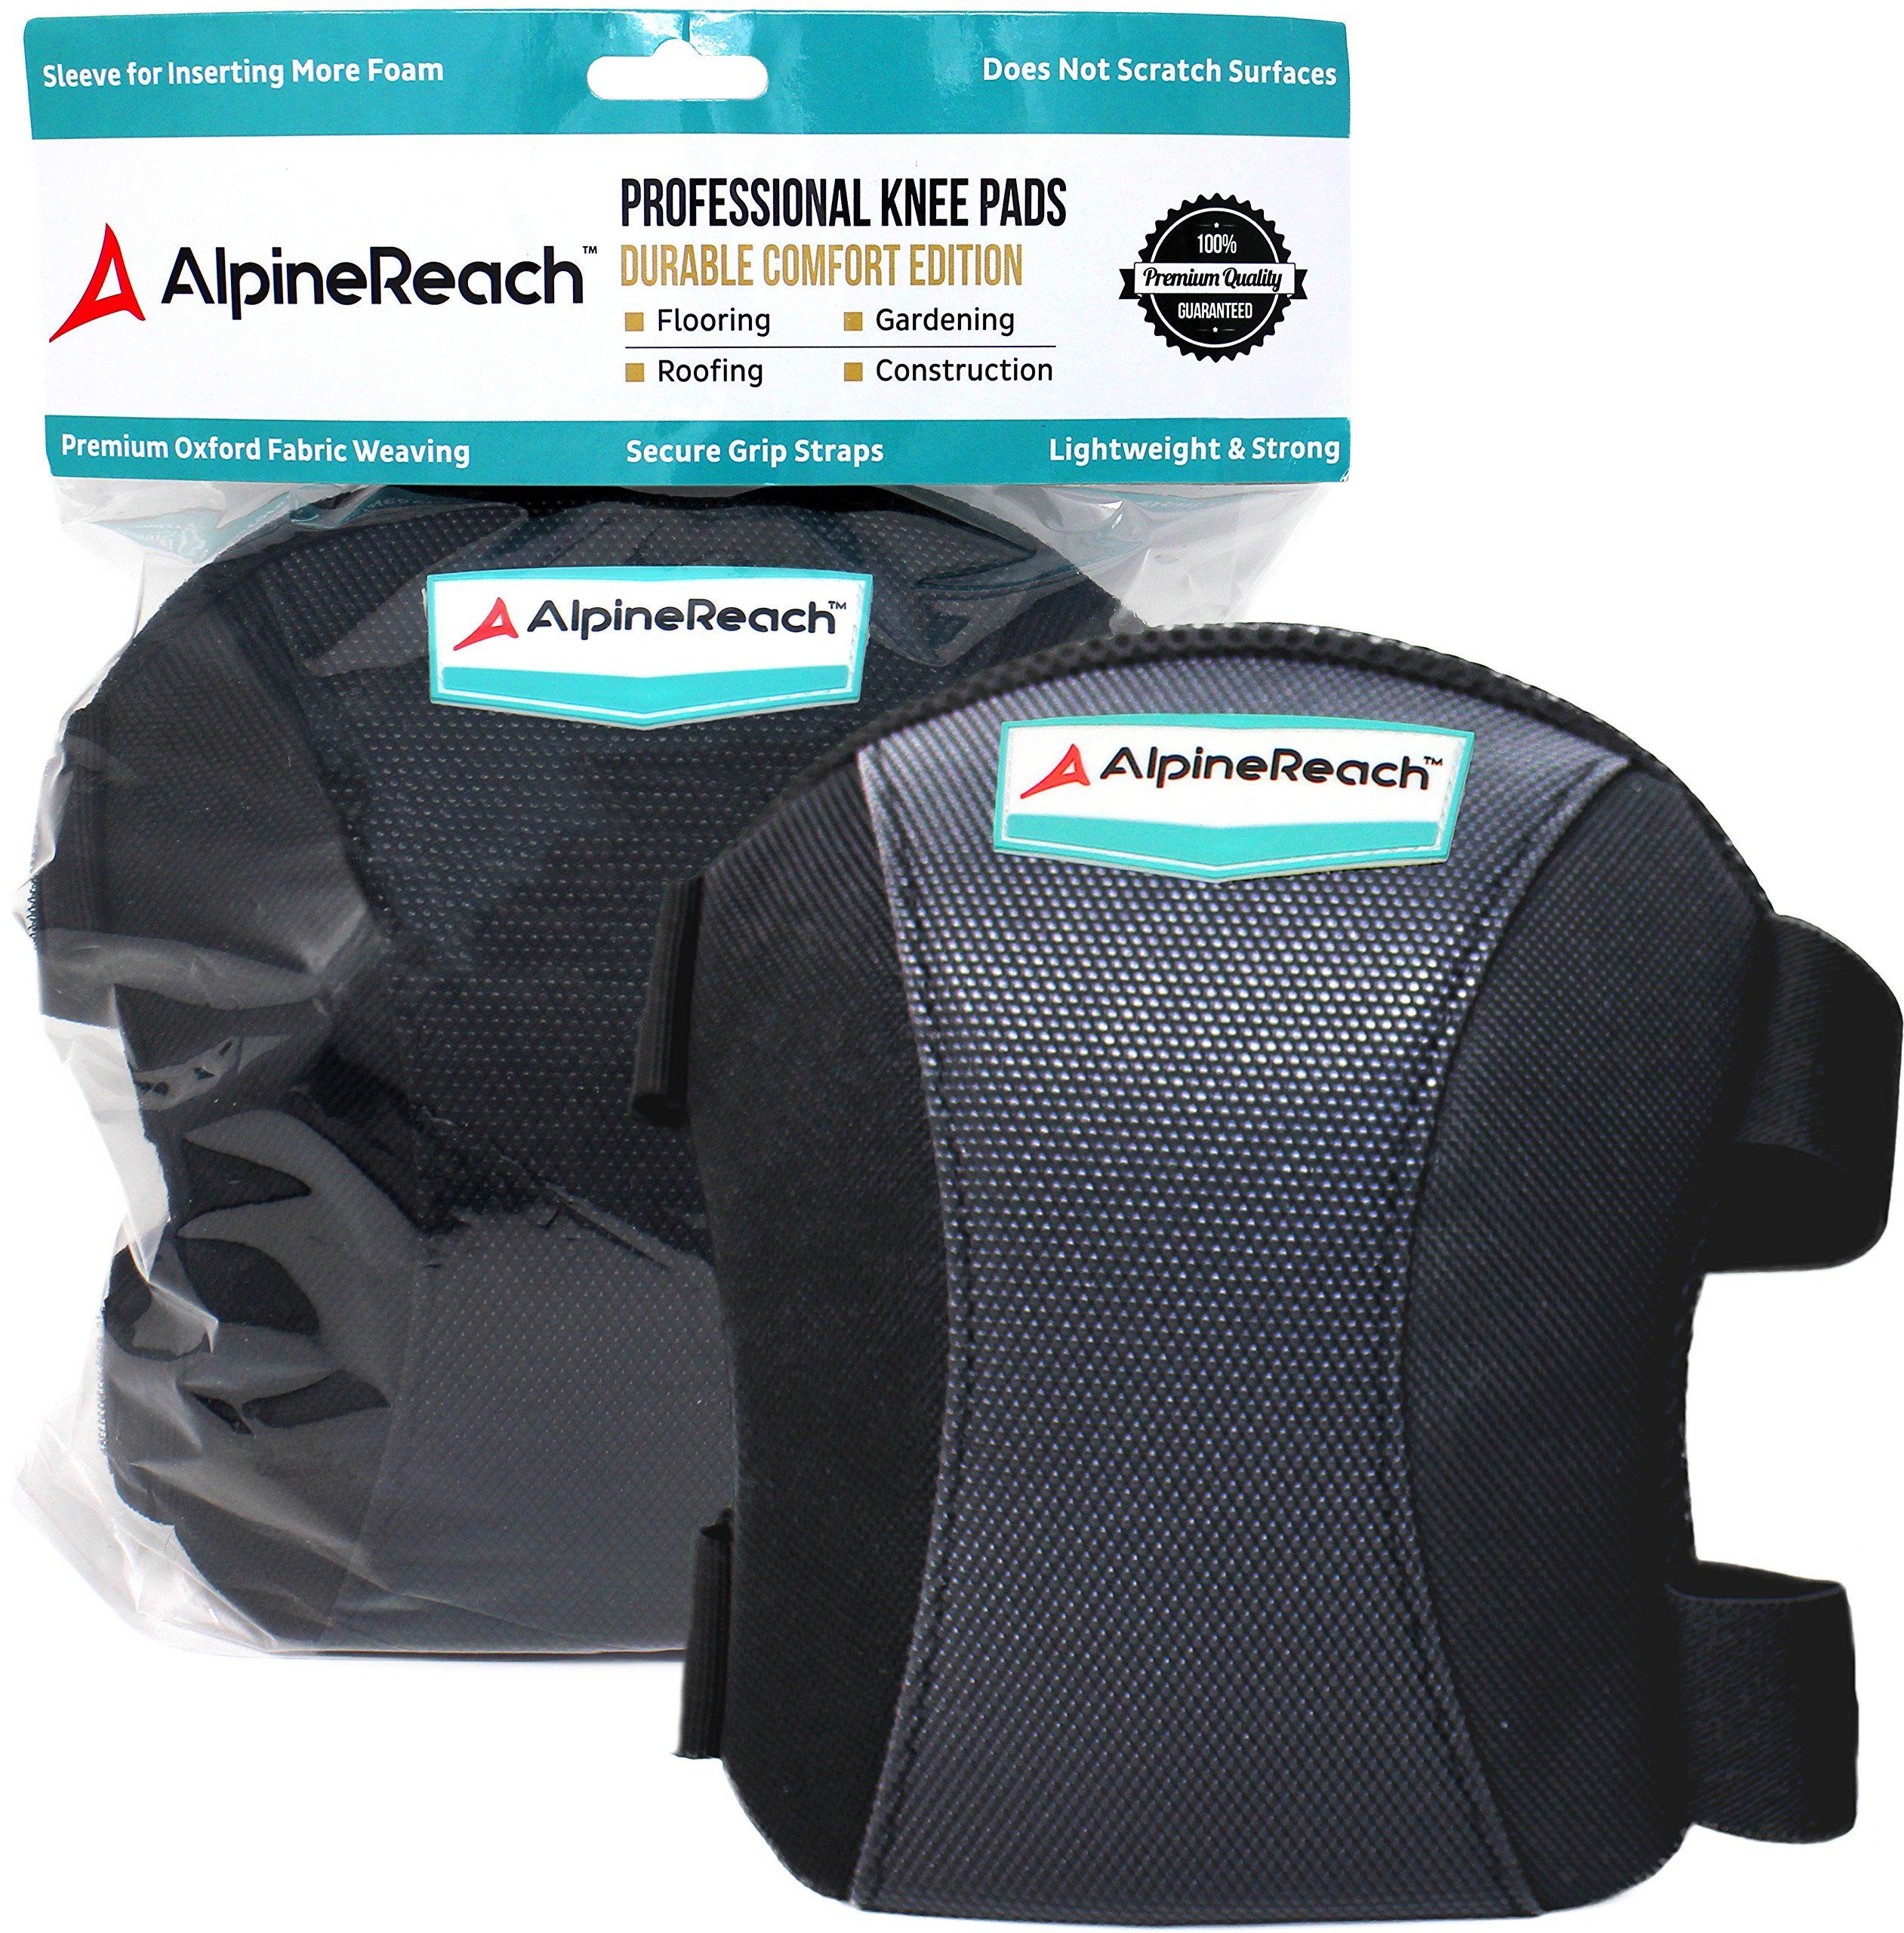 Durable Comfort Knee Pads for Work, Cleaning, Construction, Flooring, Gardening | Soft High Density Foam Inserts, Professional & Light Weight with Adjustable Non Slip Straps | Men & Women